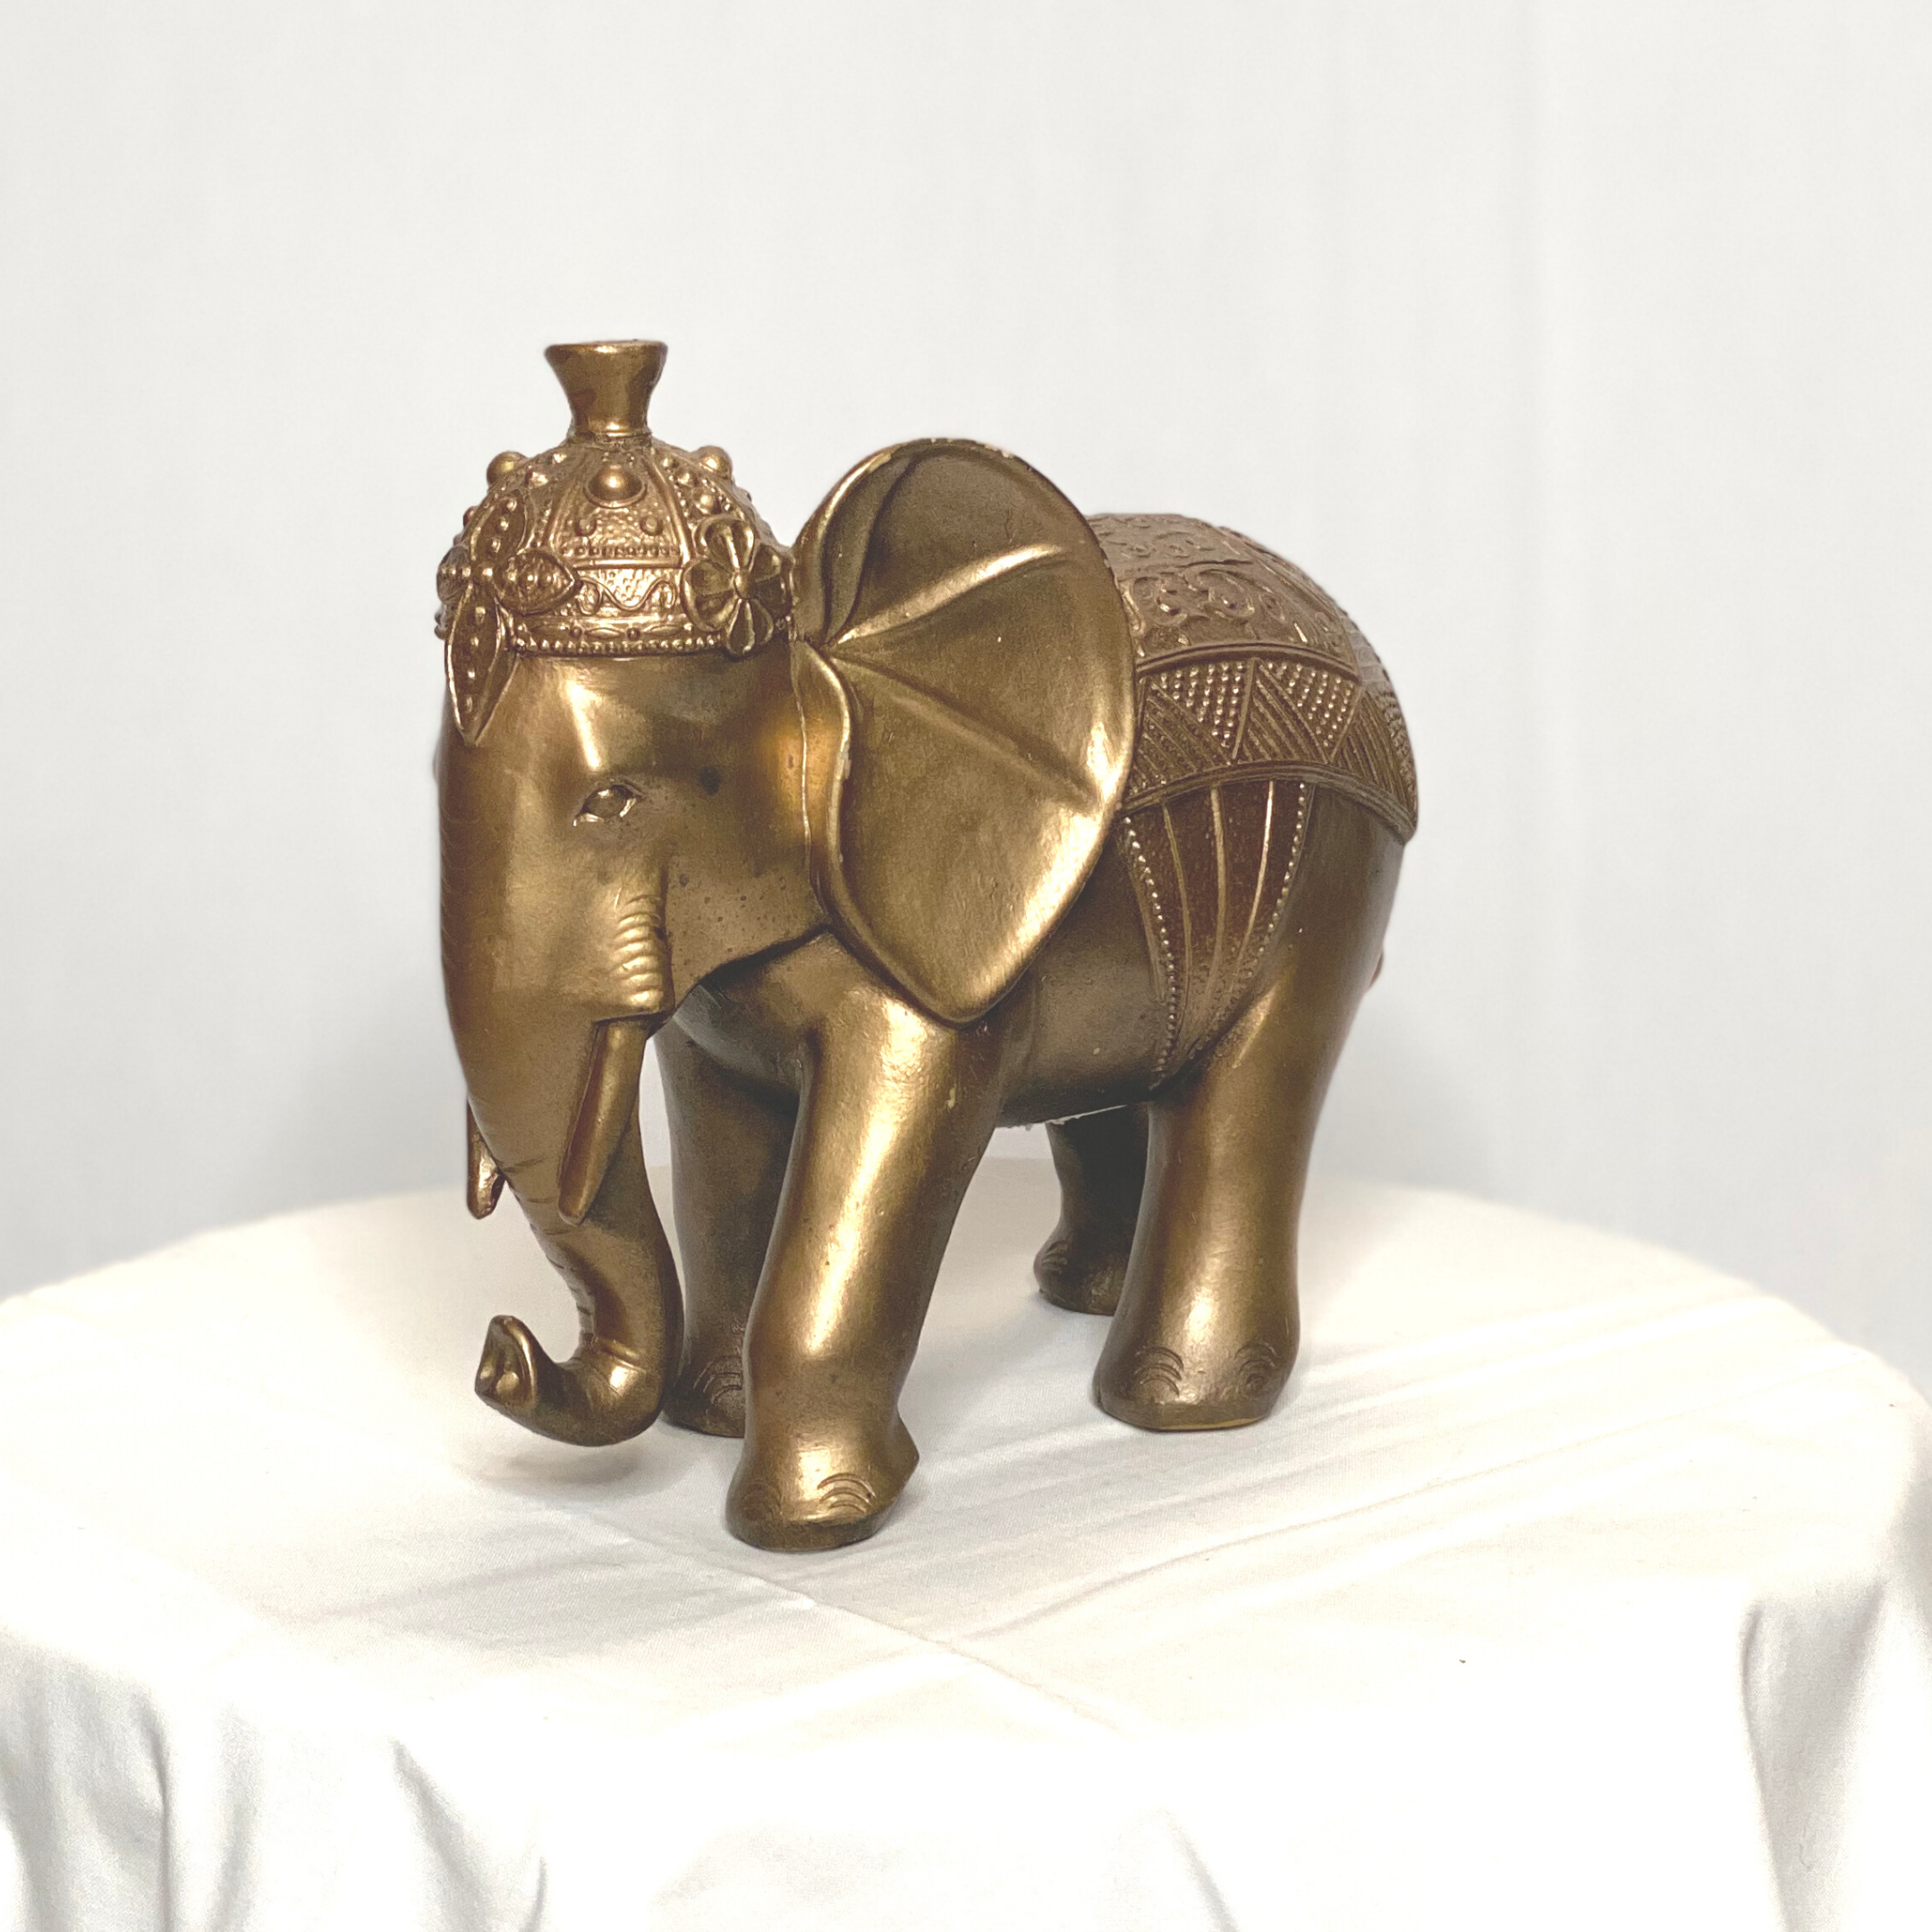 Beaded Elephant Statues Design Rentals Florals Elephant parade elephants statues monkey london monkeys elephant london england. beaded elephant statues design rentals florals